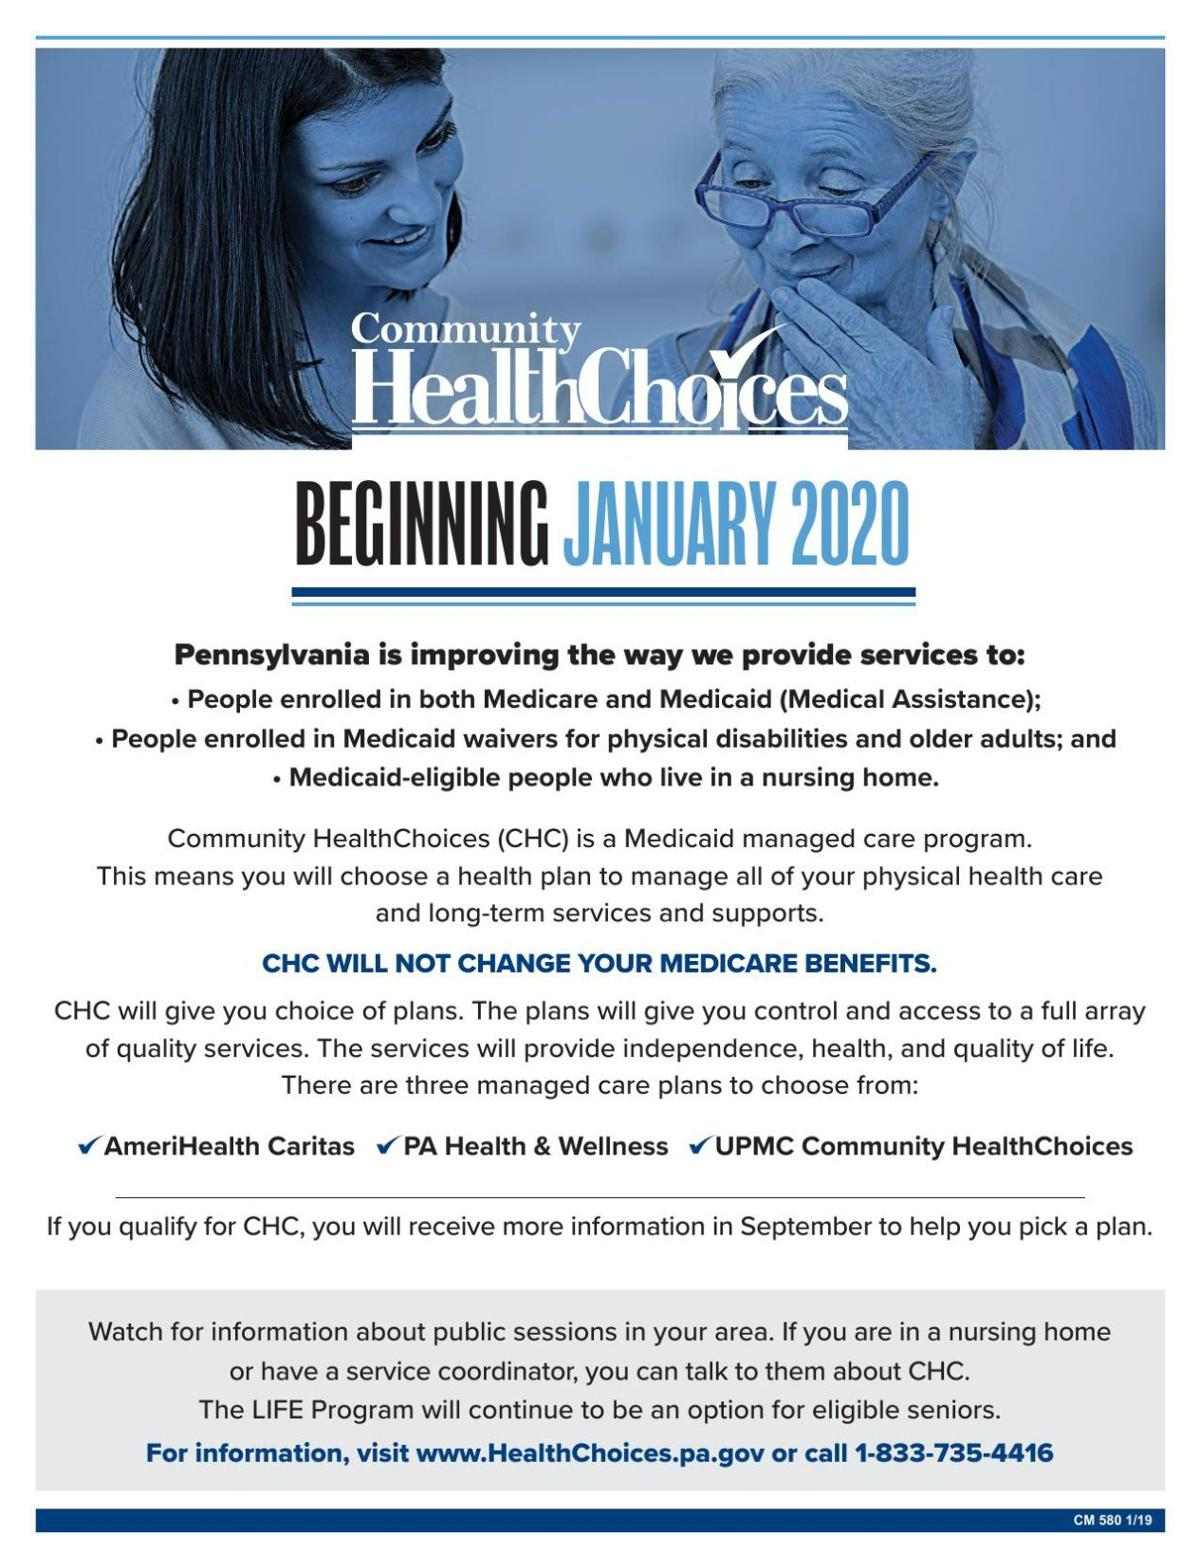 CHC introductory flyer